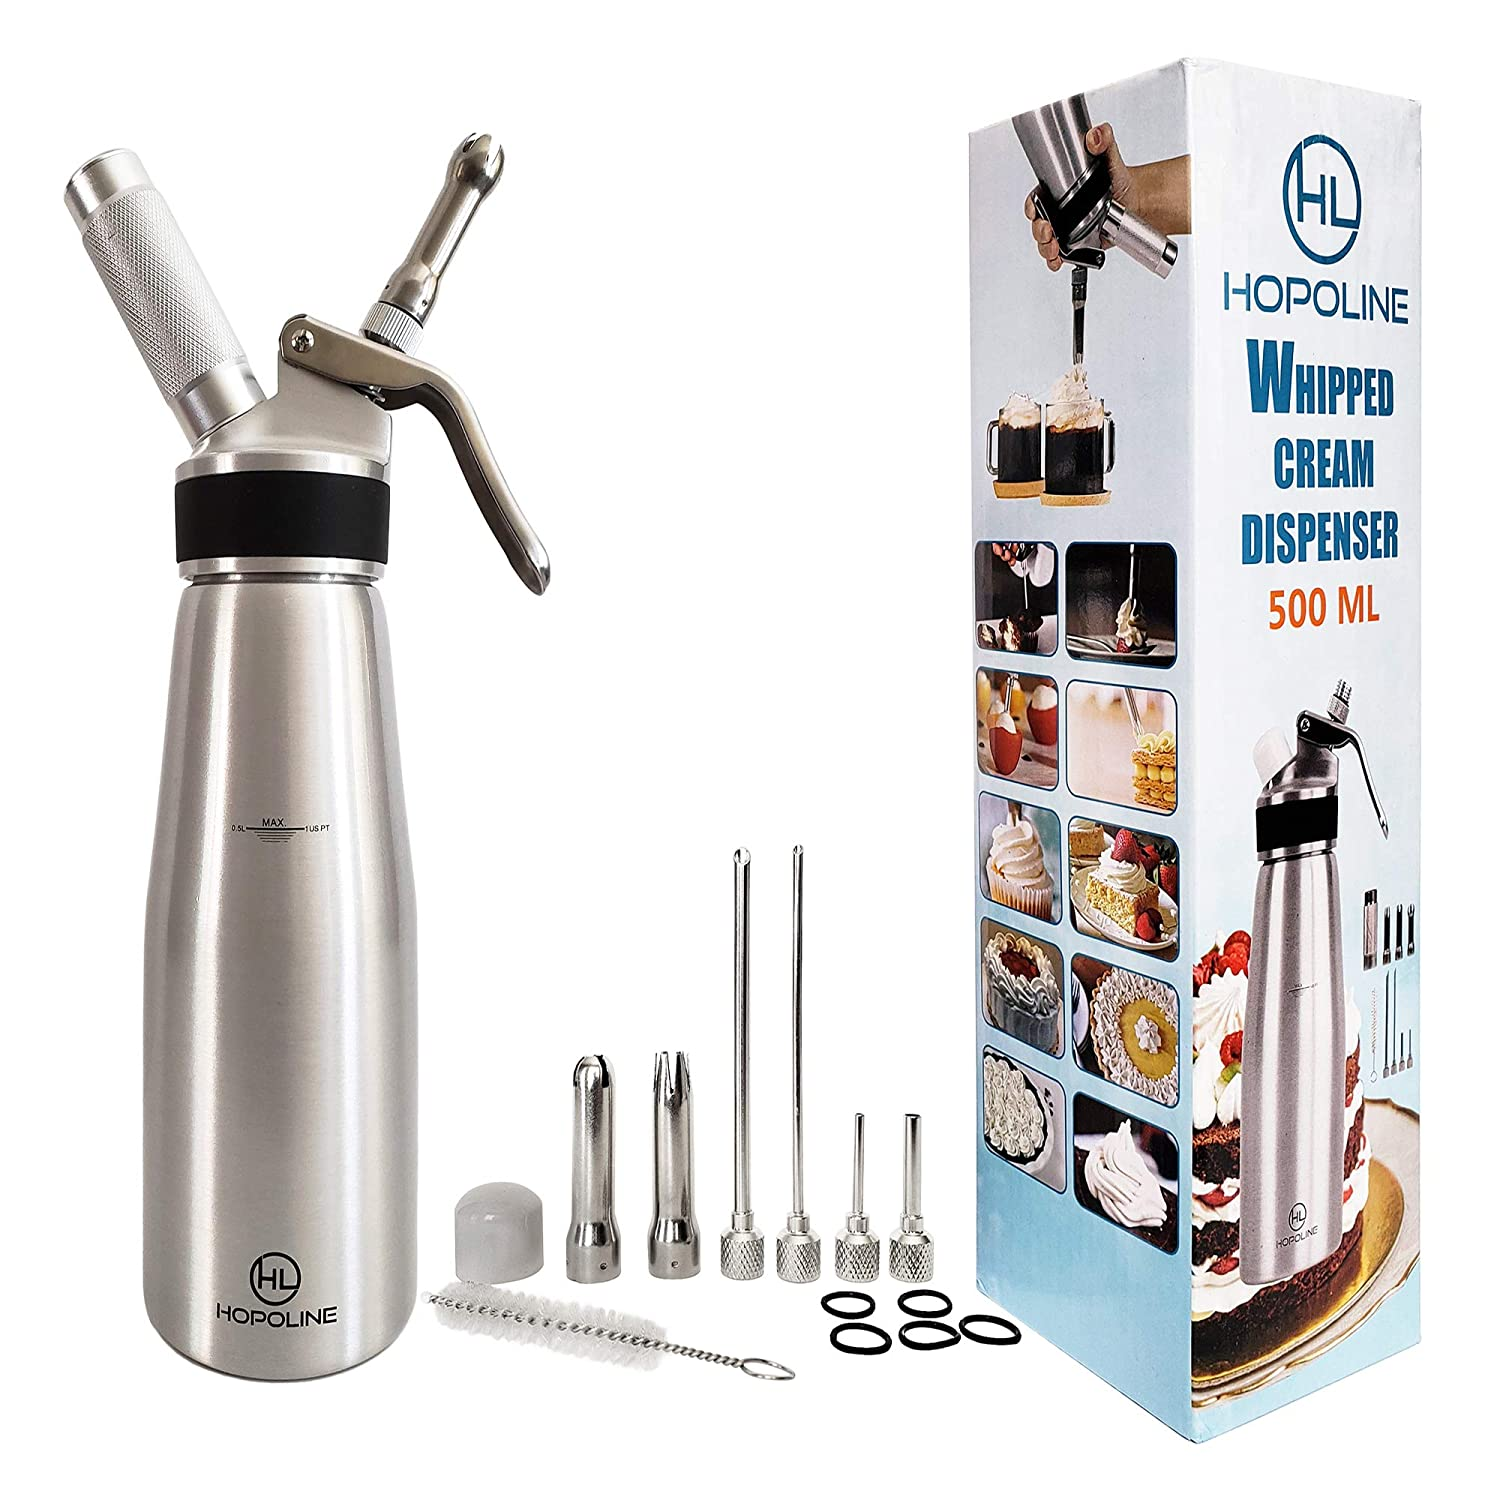 Professional Whipped Cream Dispenser, Durable Aluminum Alloy Whip Cream Dispensers, Whipped Cream Maker Canister, Compatible with All Brands of 8-Gram N2O Cartridges- Not Included